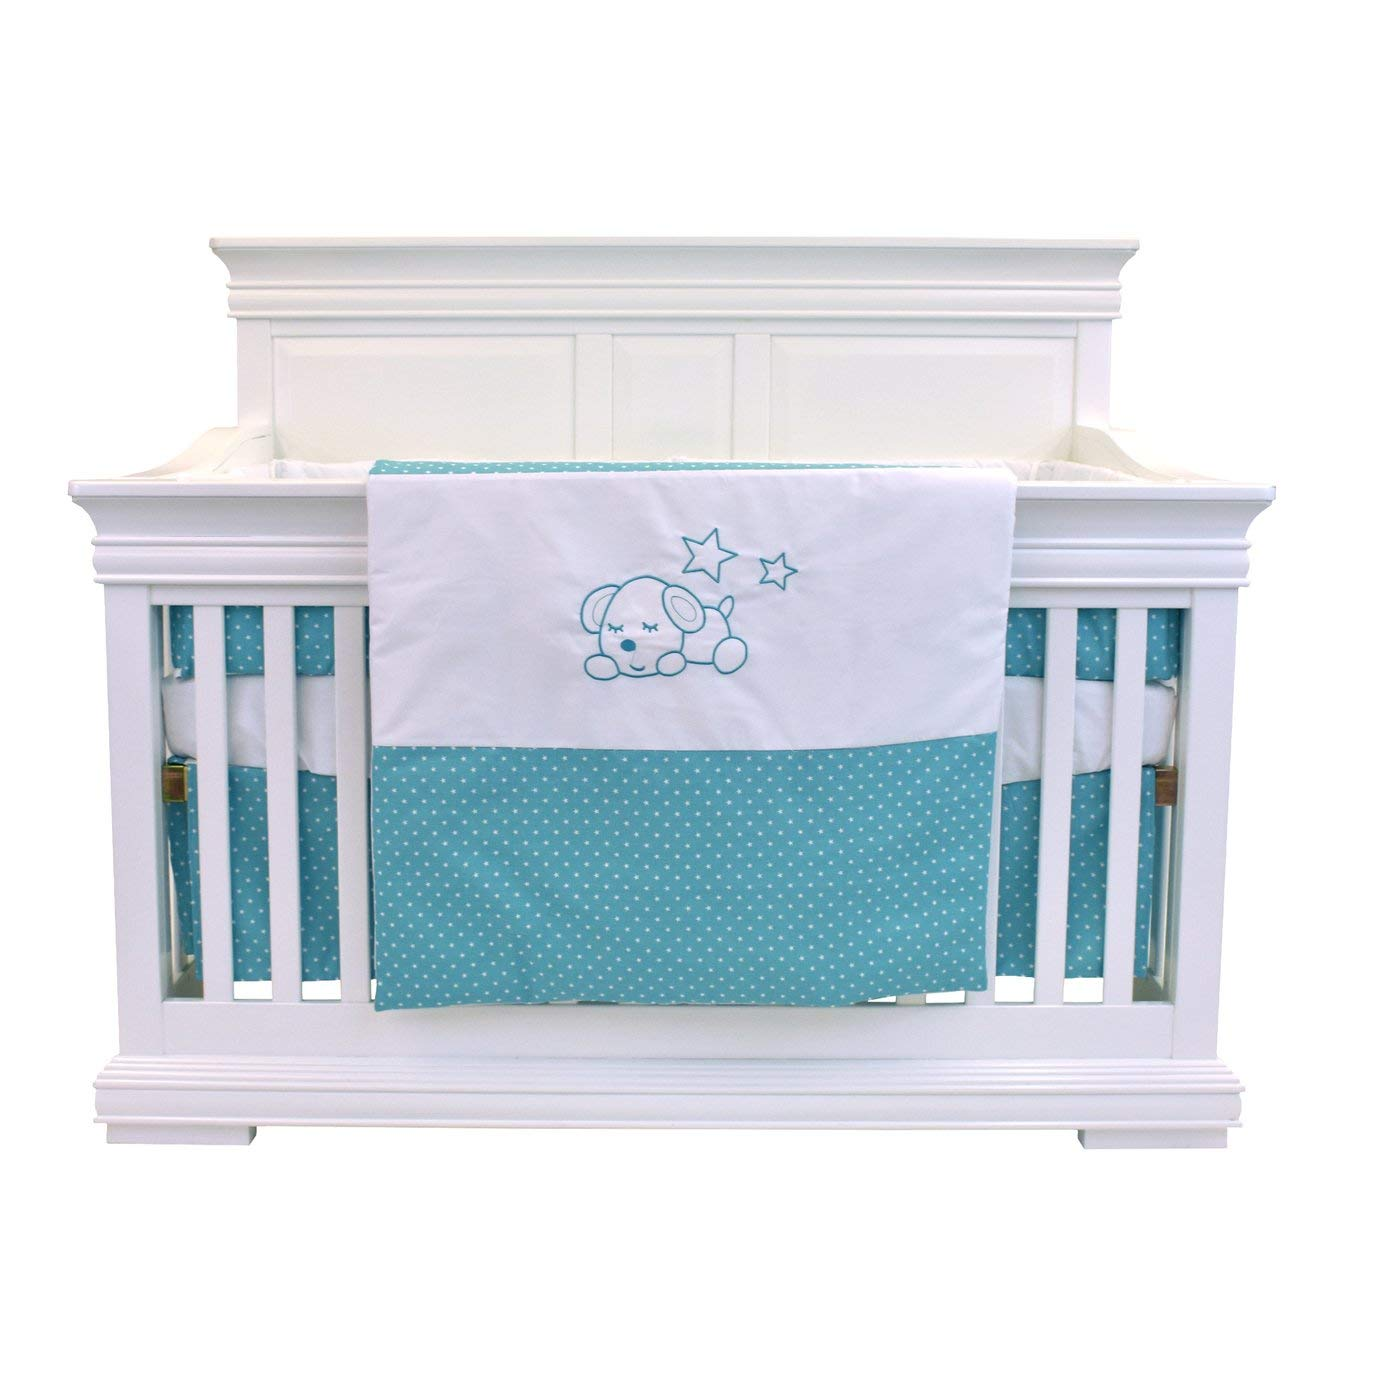 Bebelelo - 5 pieces bedding for baby - turquoise and white with a Sleeping Dog pattern - image 3 of 9